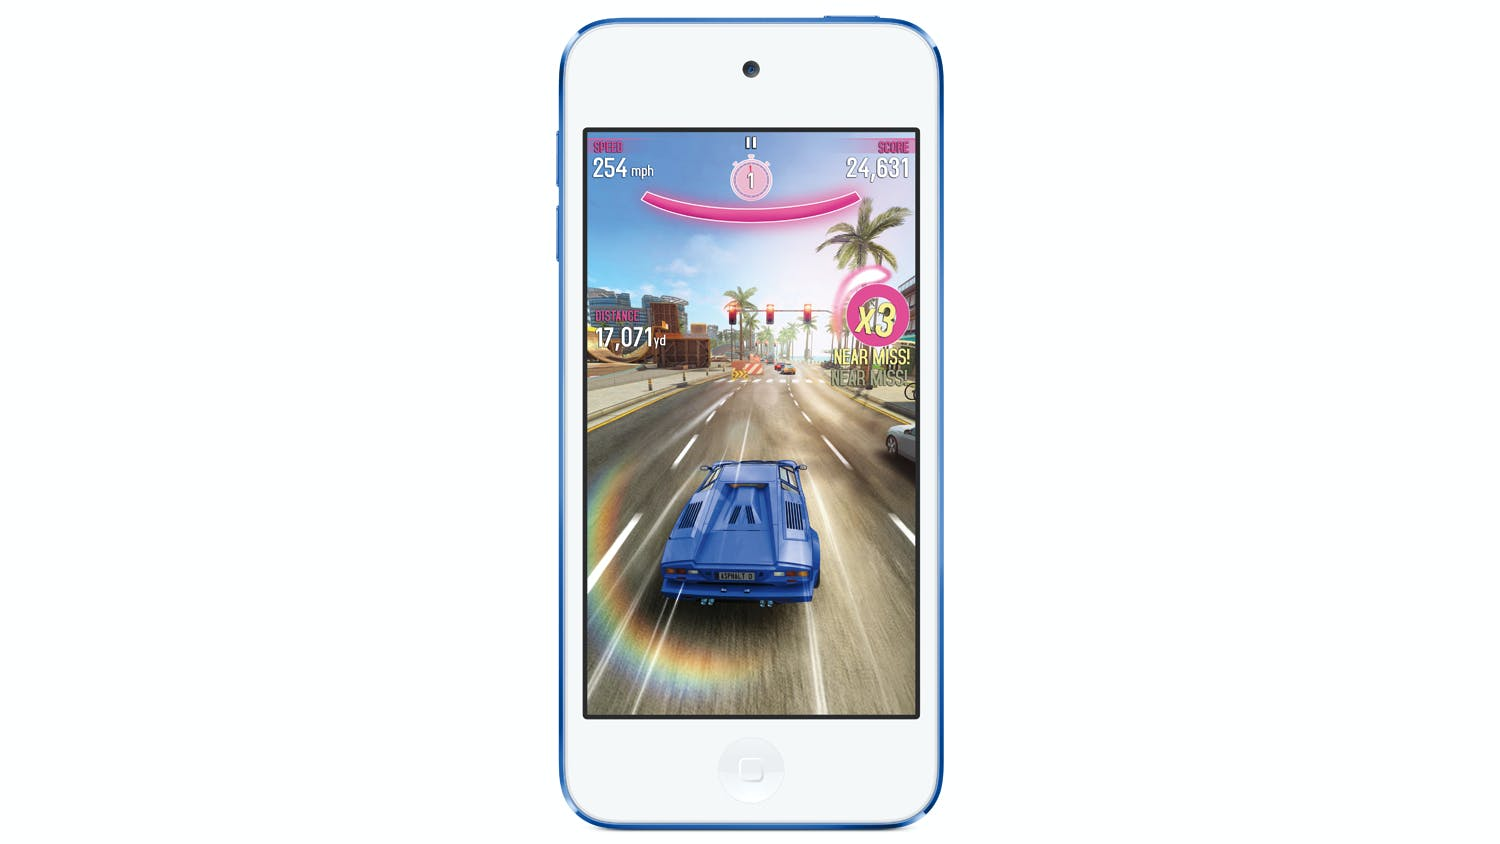 Ipod Touch 32gb Harvey Norman New Zealand Apple 6 64gb Pink Wishlist Compare